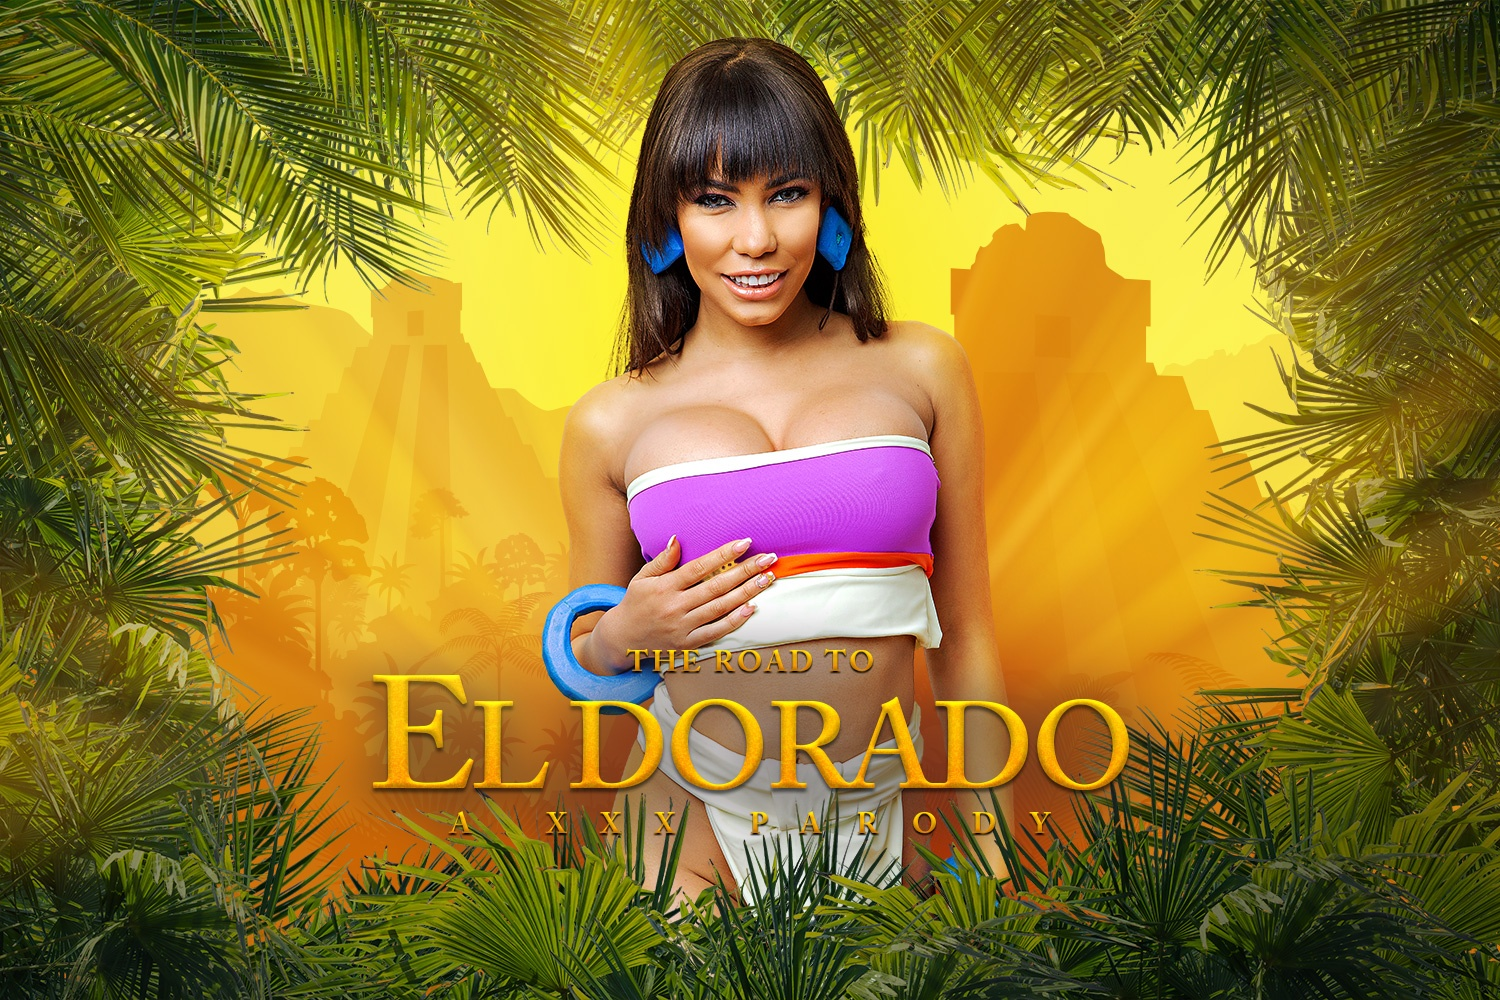 The Road to El Dorado A XXX Parody Gia Milana